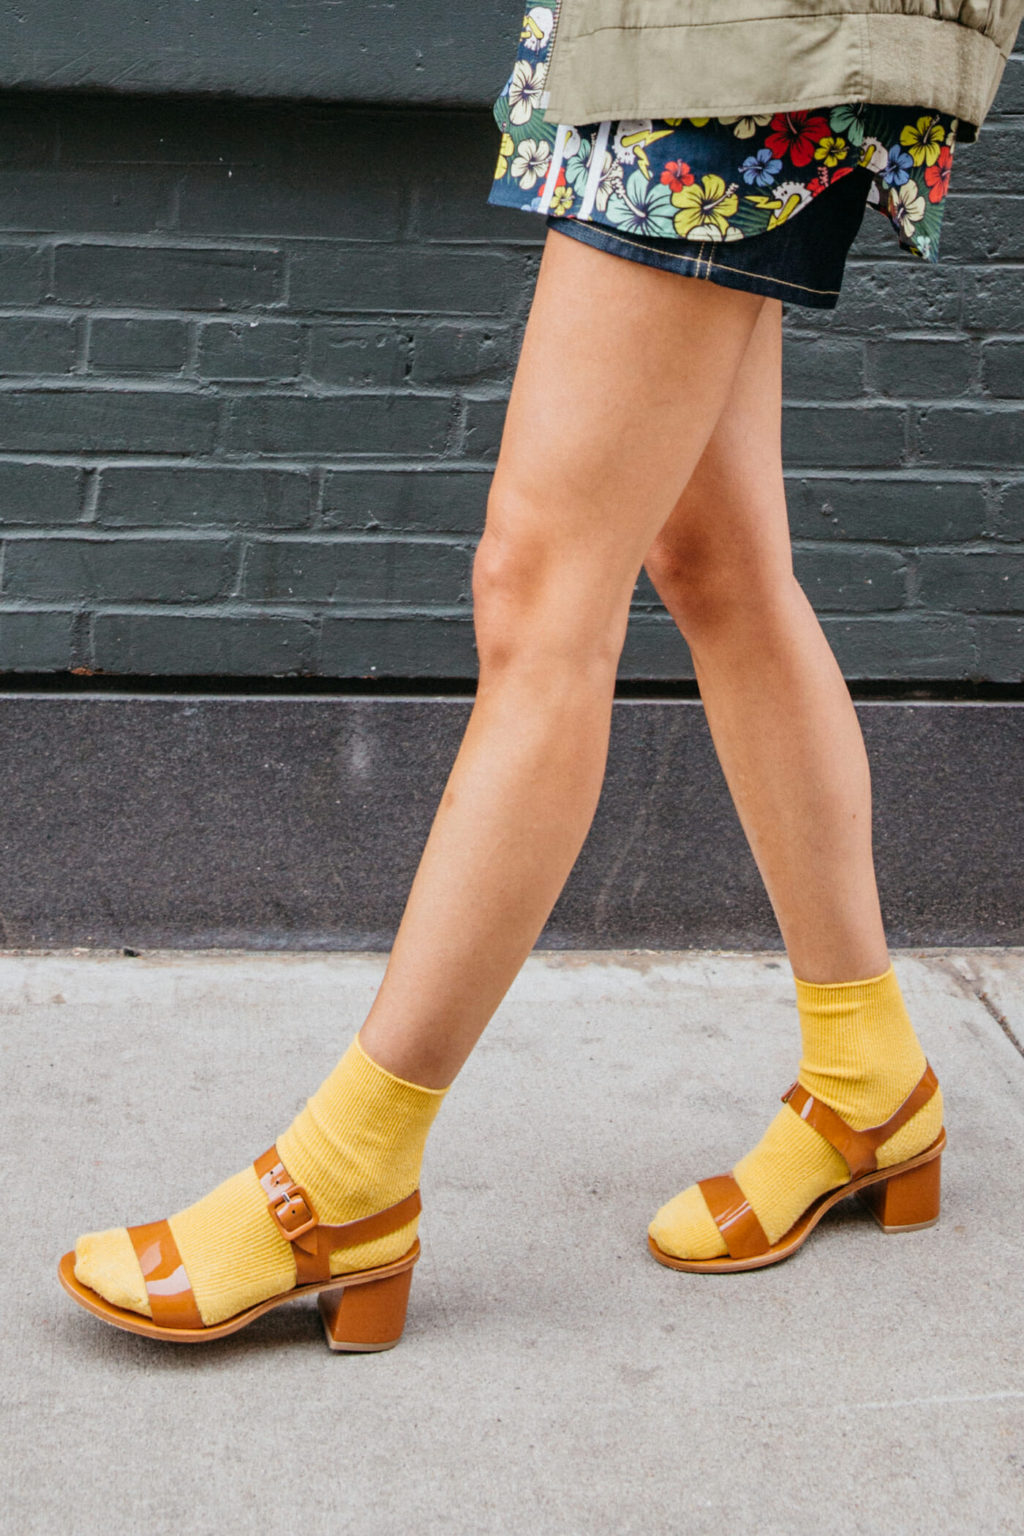 Sandals-with-Socks-1024x1536 Top 10 Outdated Fashion & Clothing Trends to Avoid in 2020